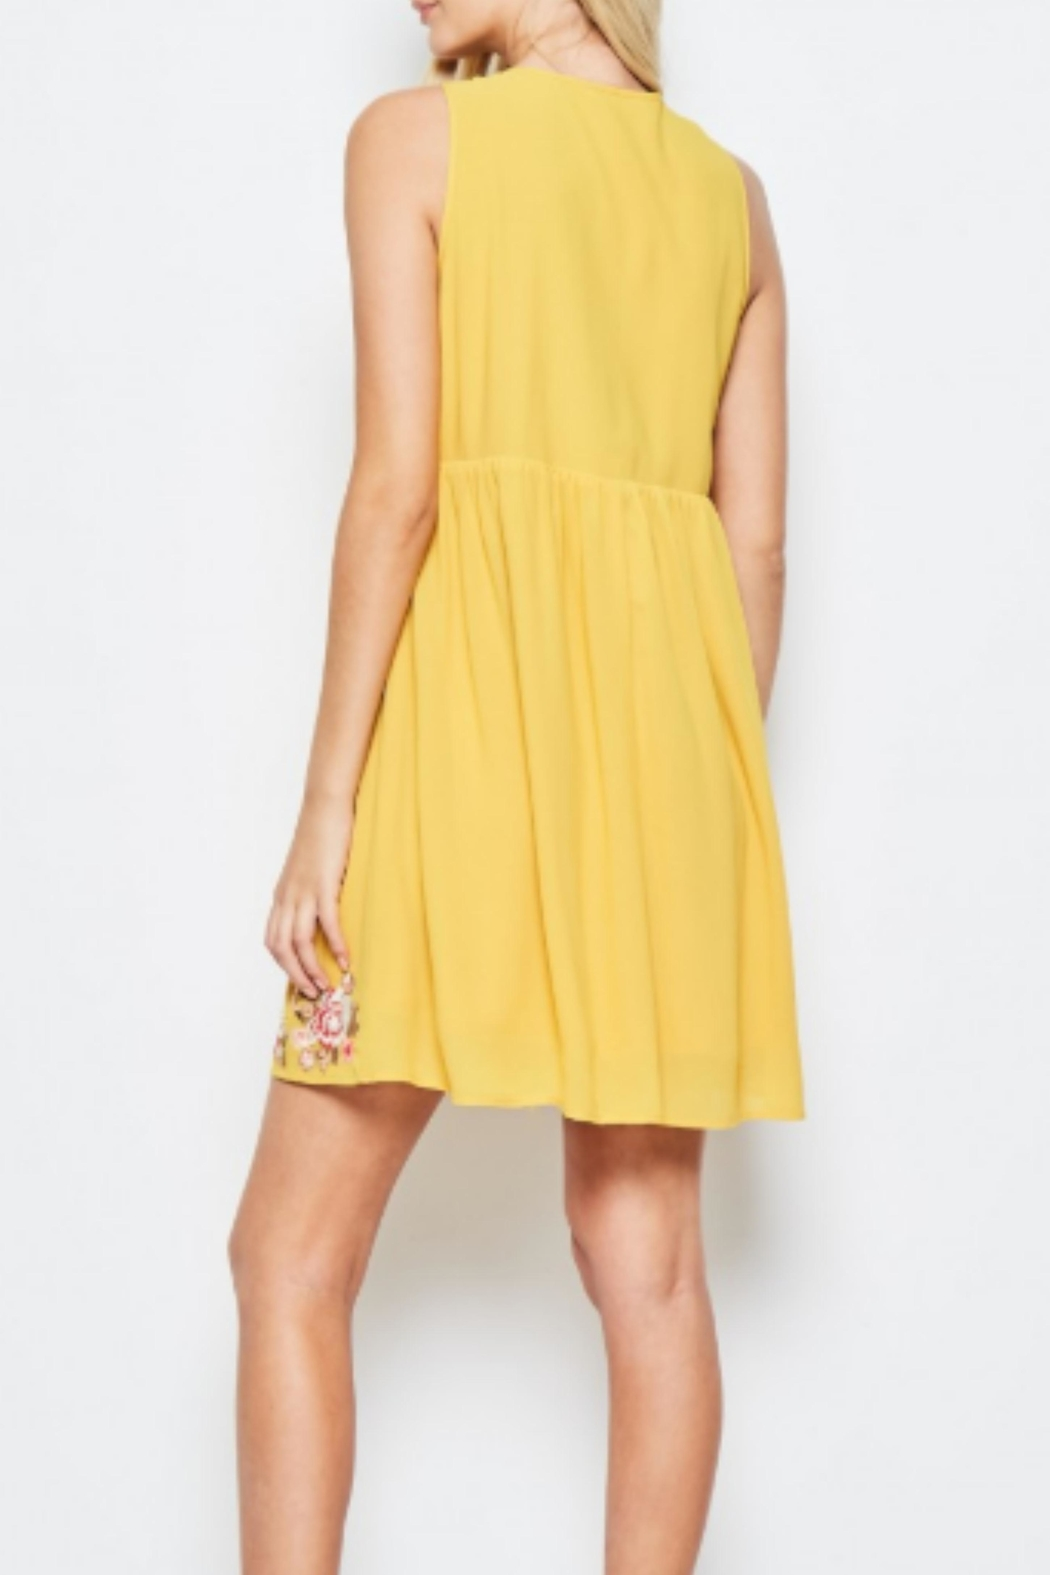 Andree by Unit Embroidered Golden Sundress - Side Cropped Image